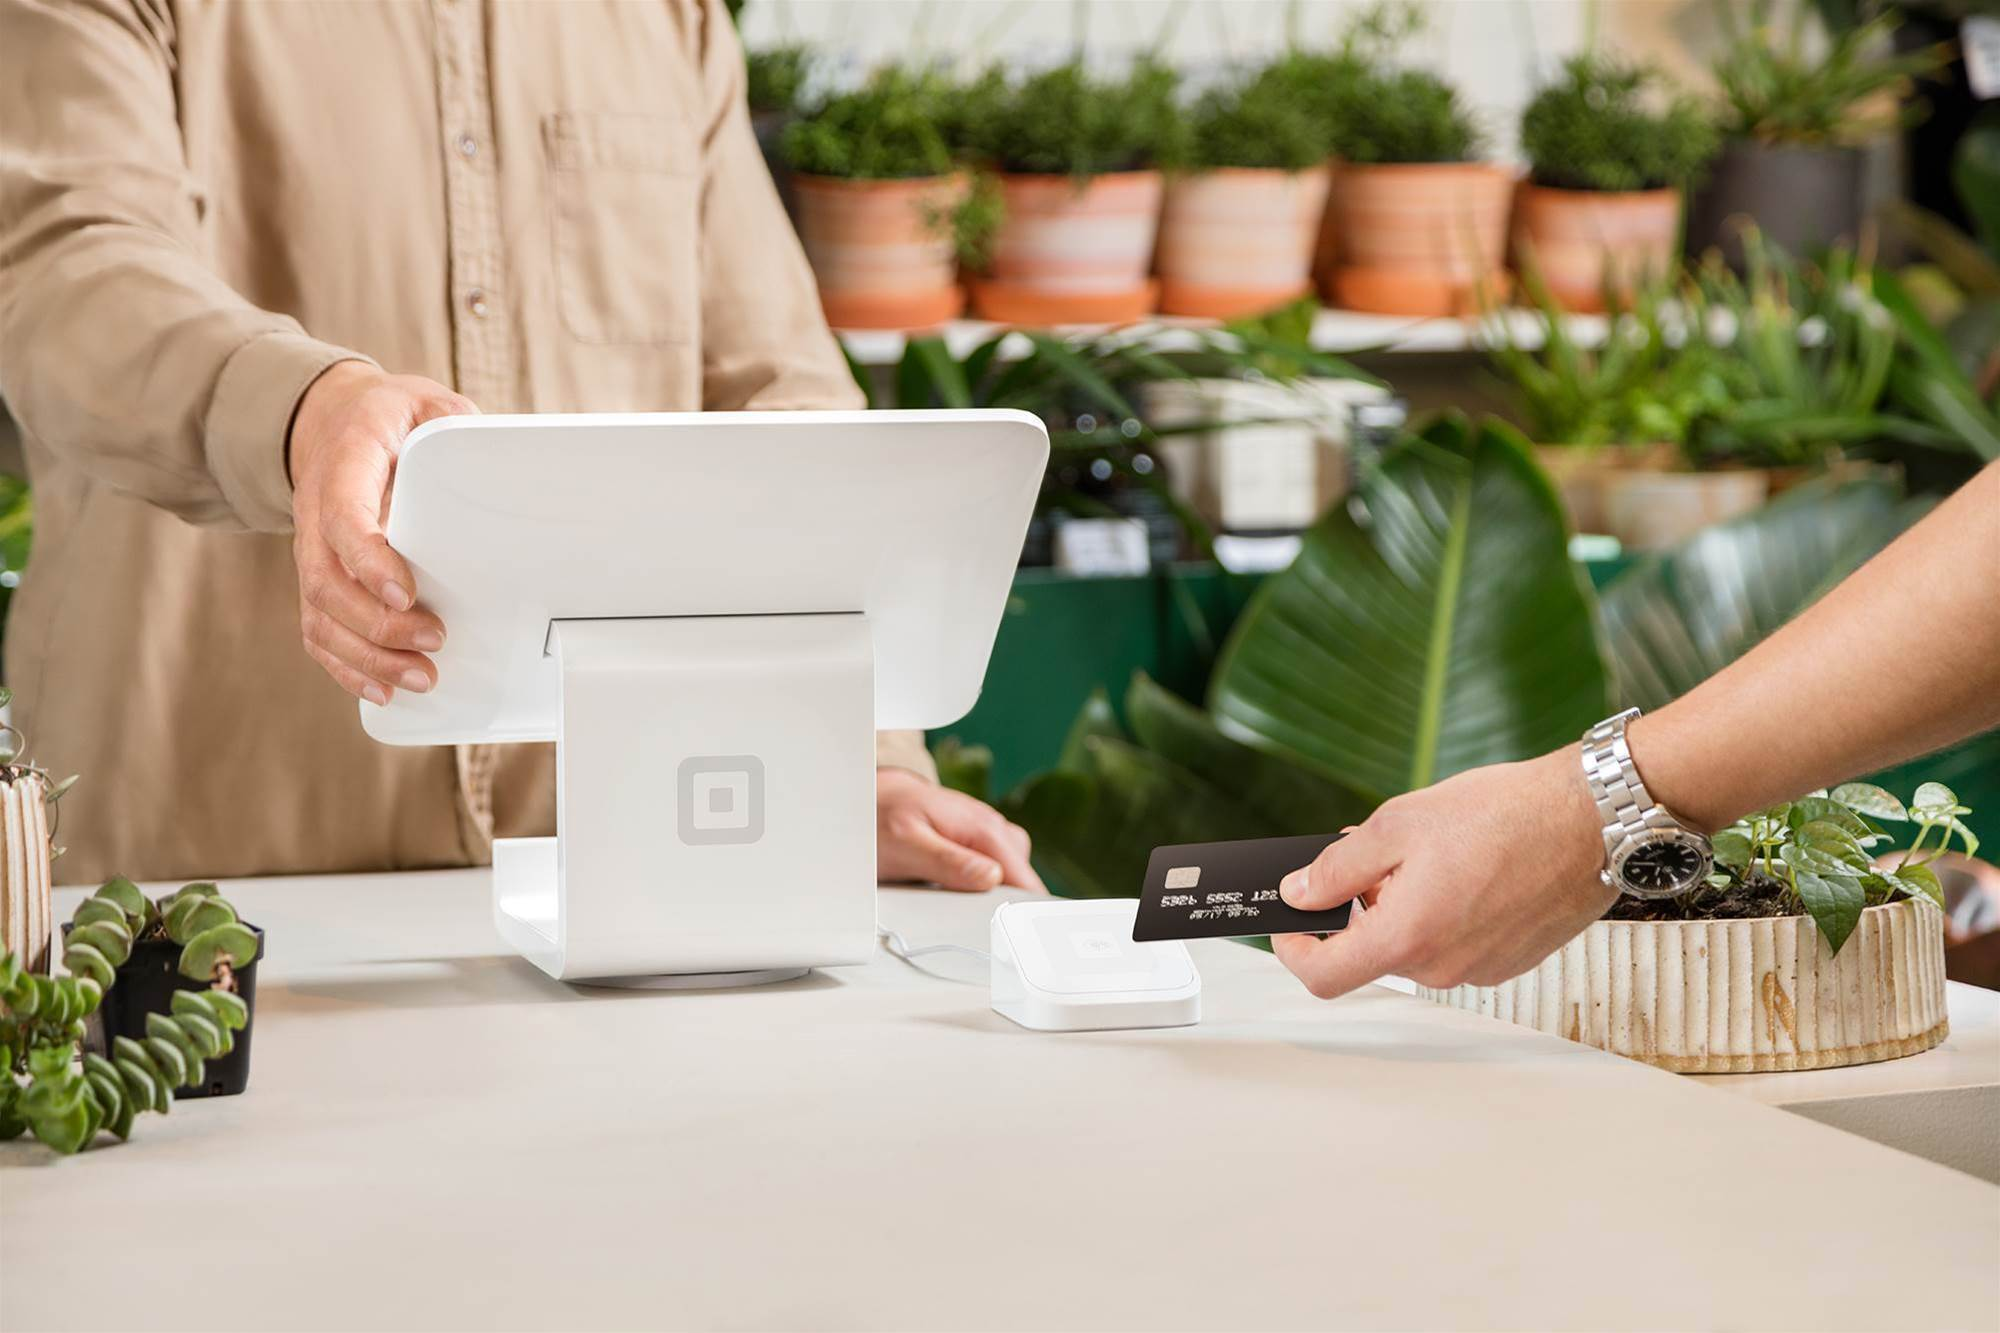 The Square Stand makes counter-top payments easier